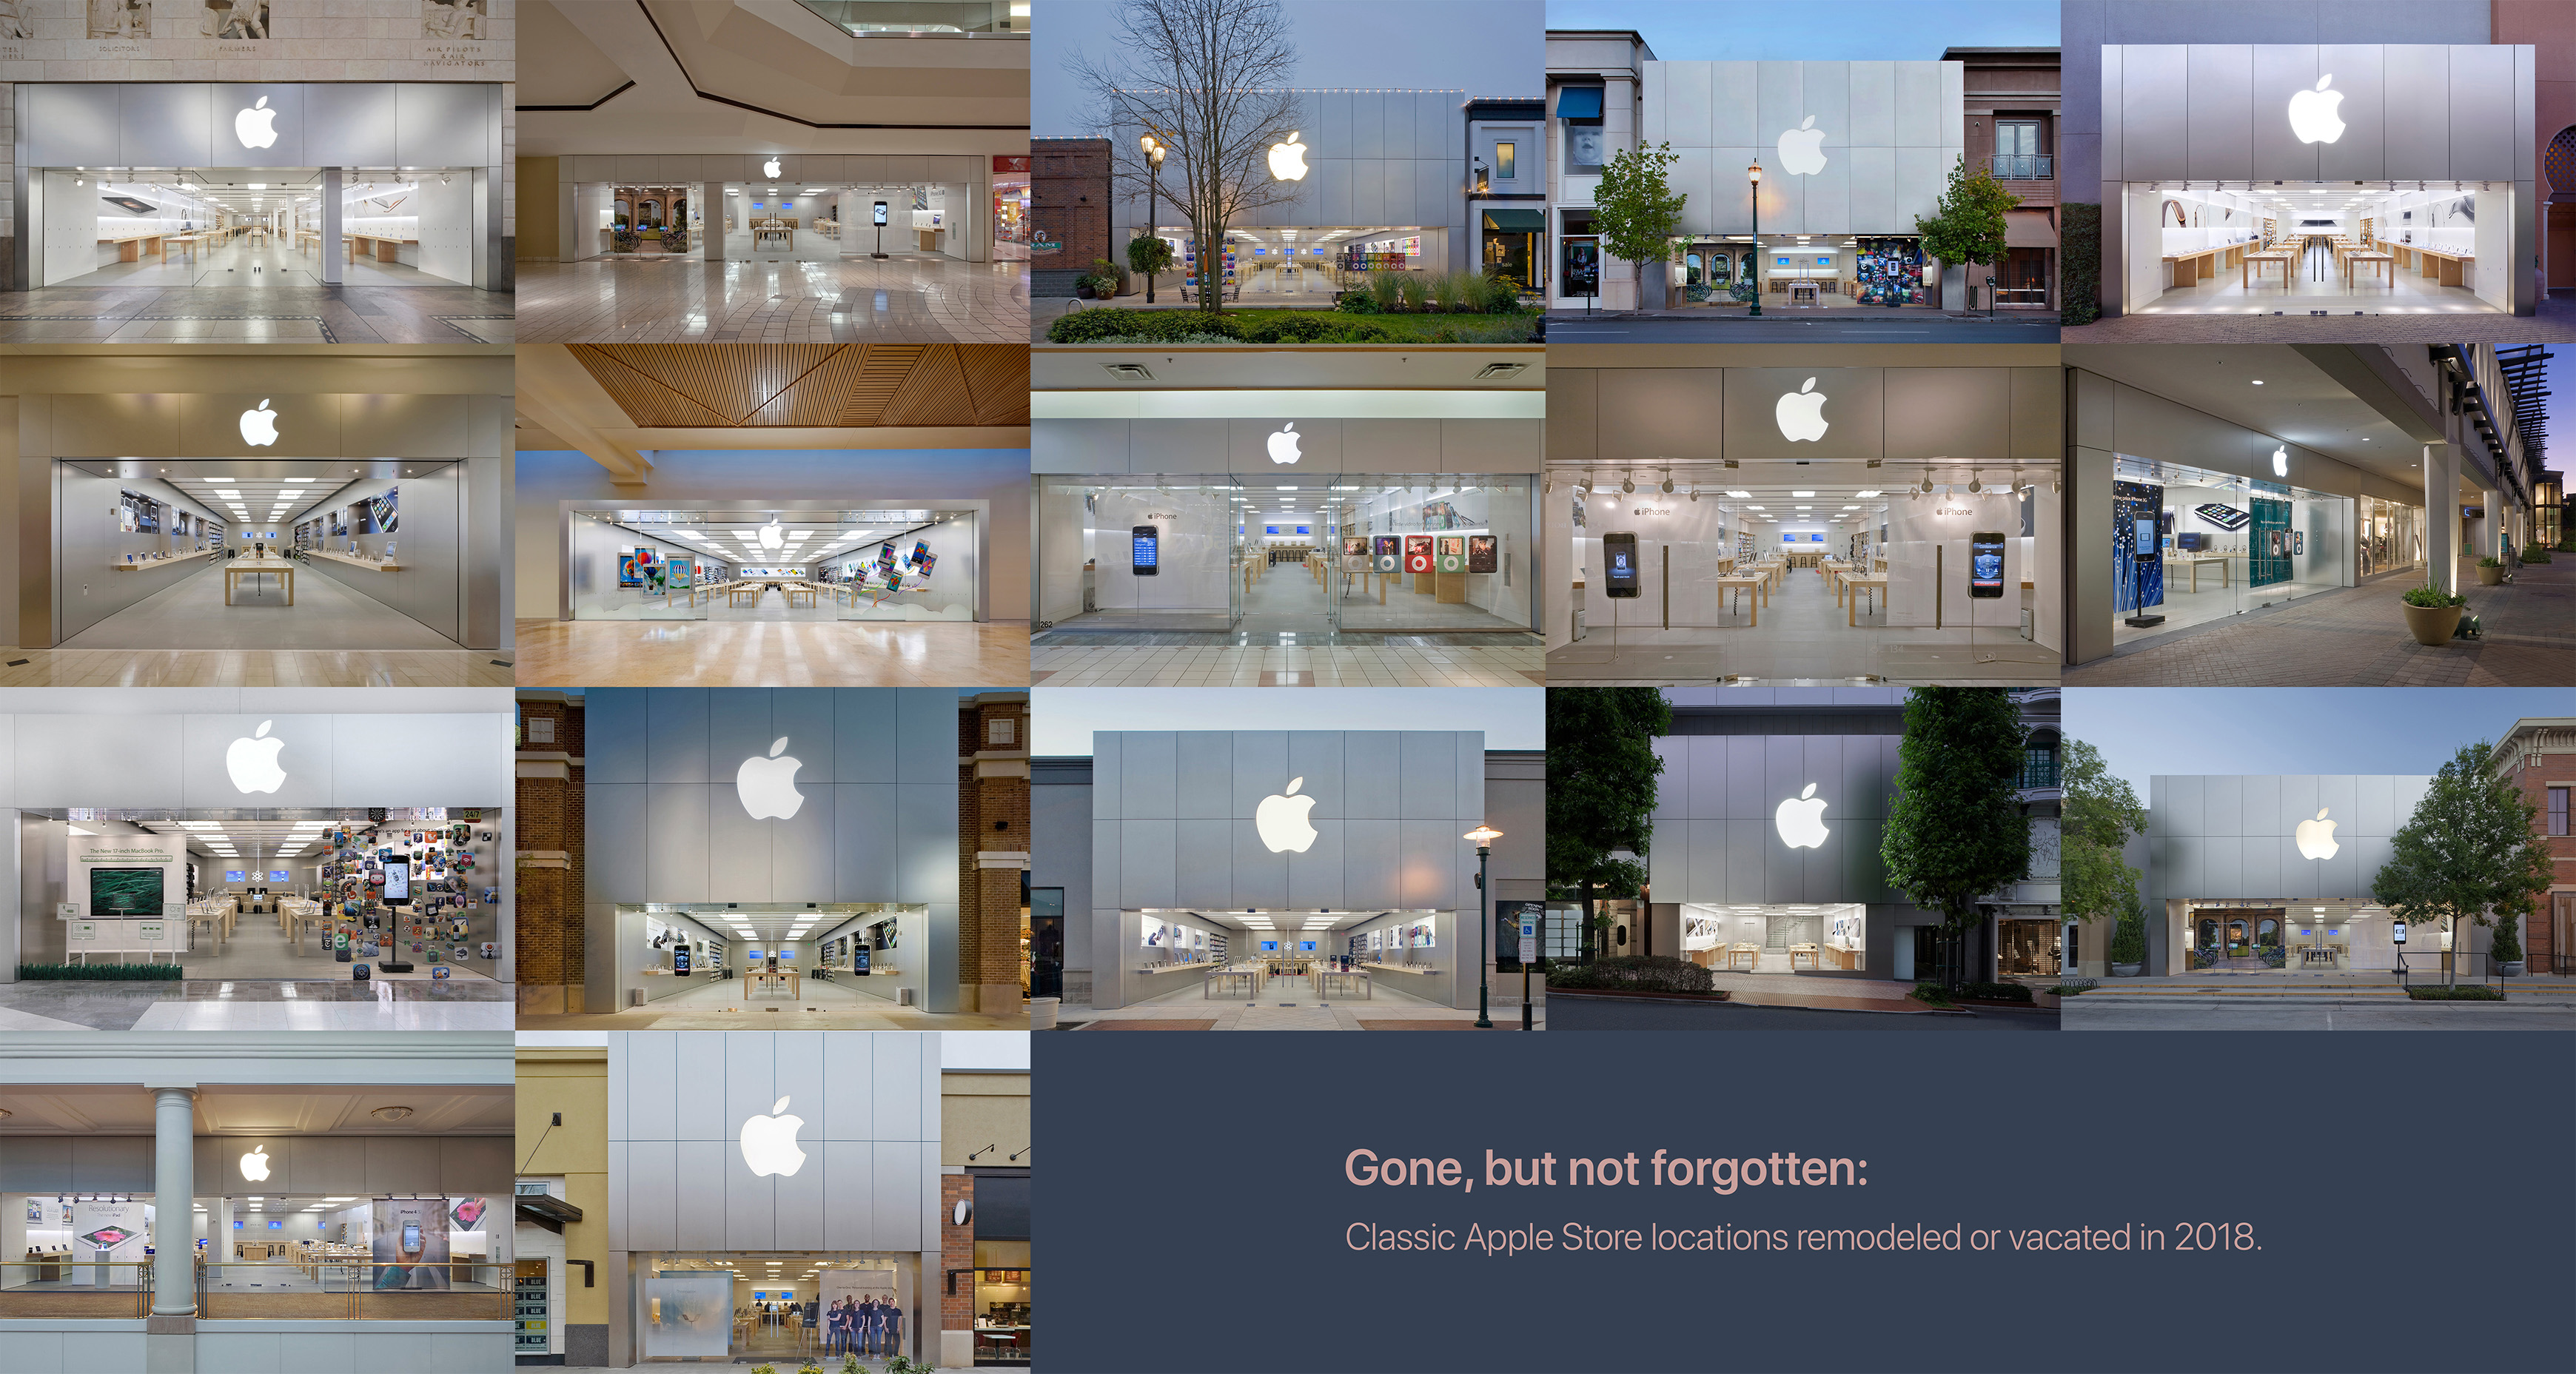 Architecture, creativity, community: A field guide to Apple